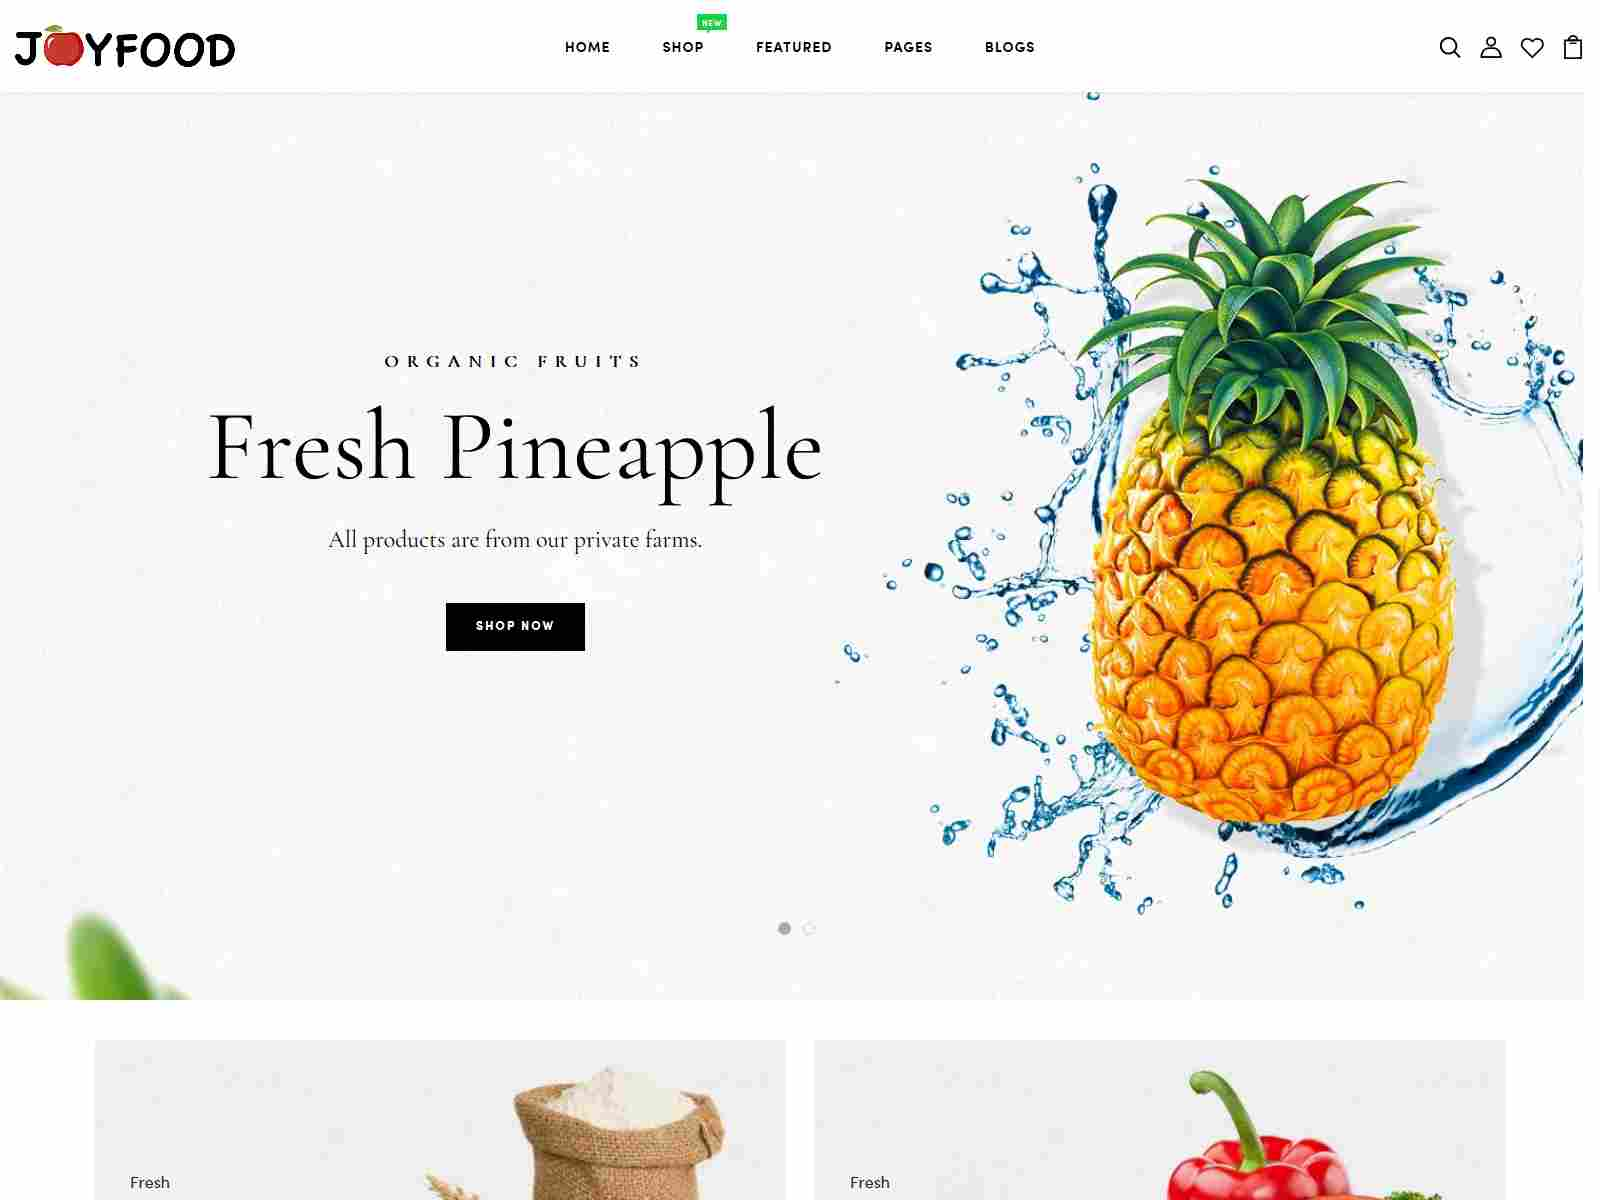 JoyFood - Grocery, Supermarket Organic Food/Fruit/Vegetables eCommerce Shopify Theme